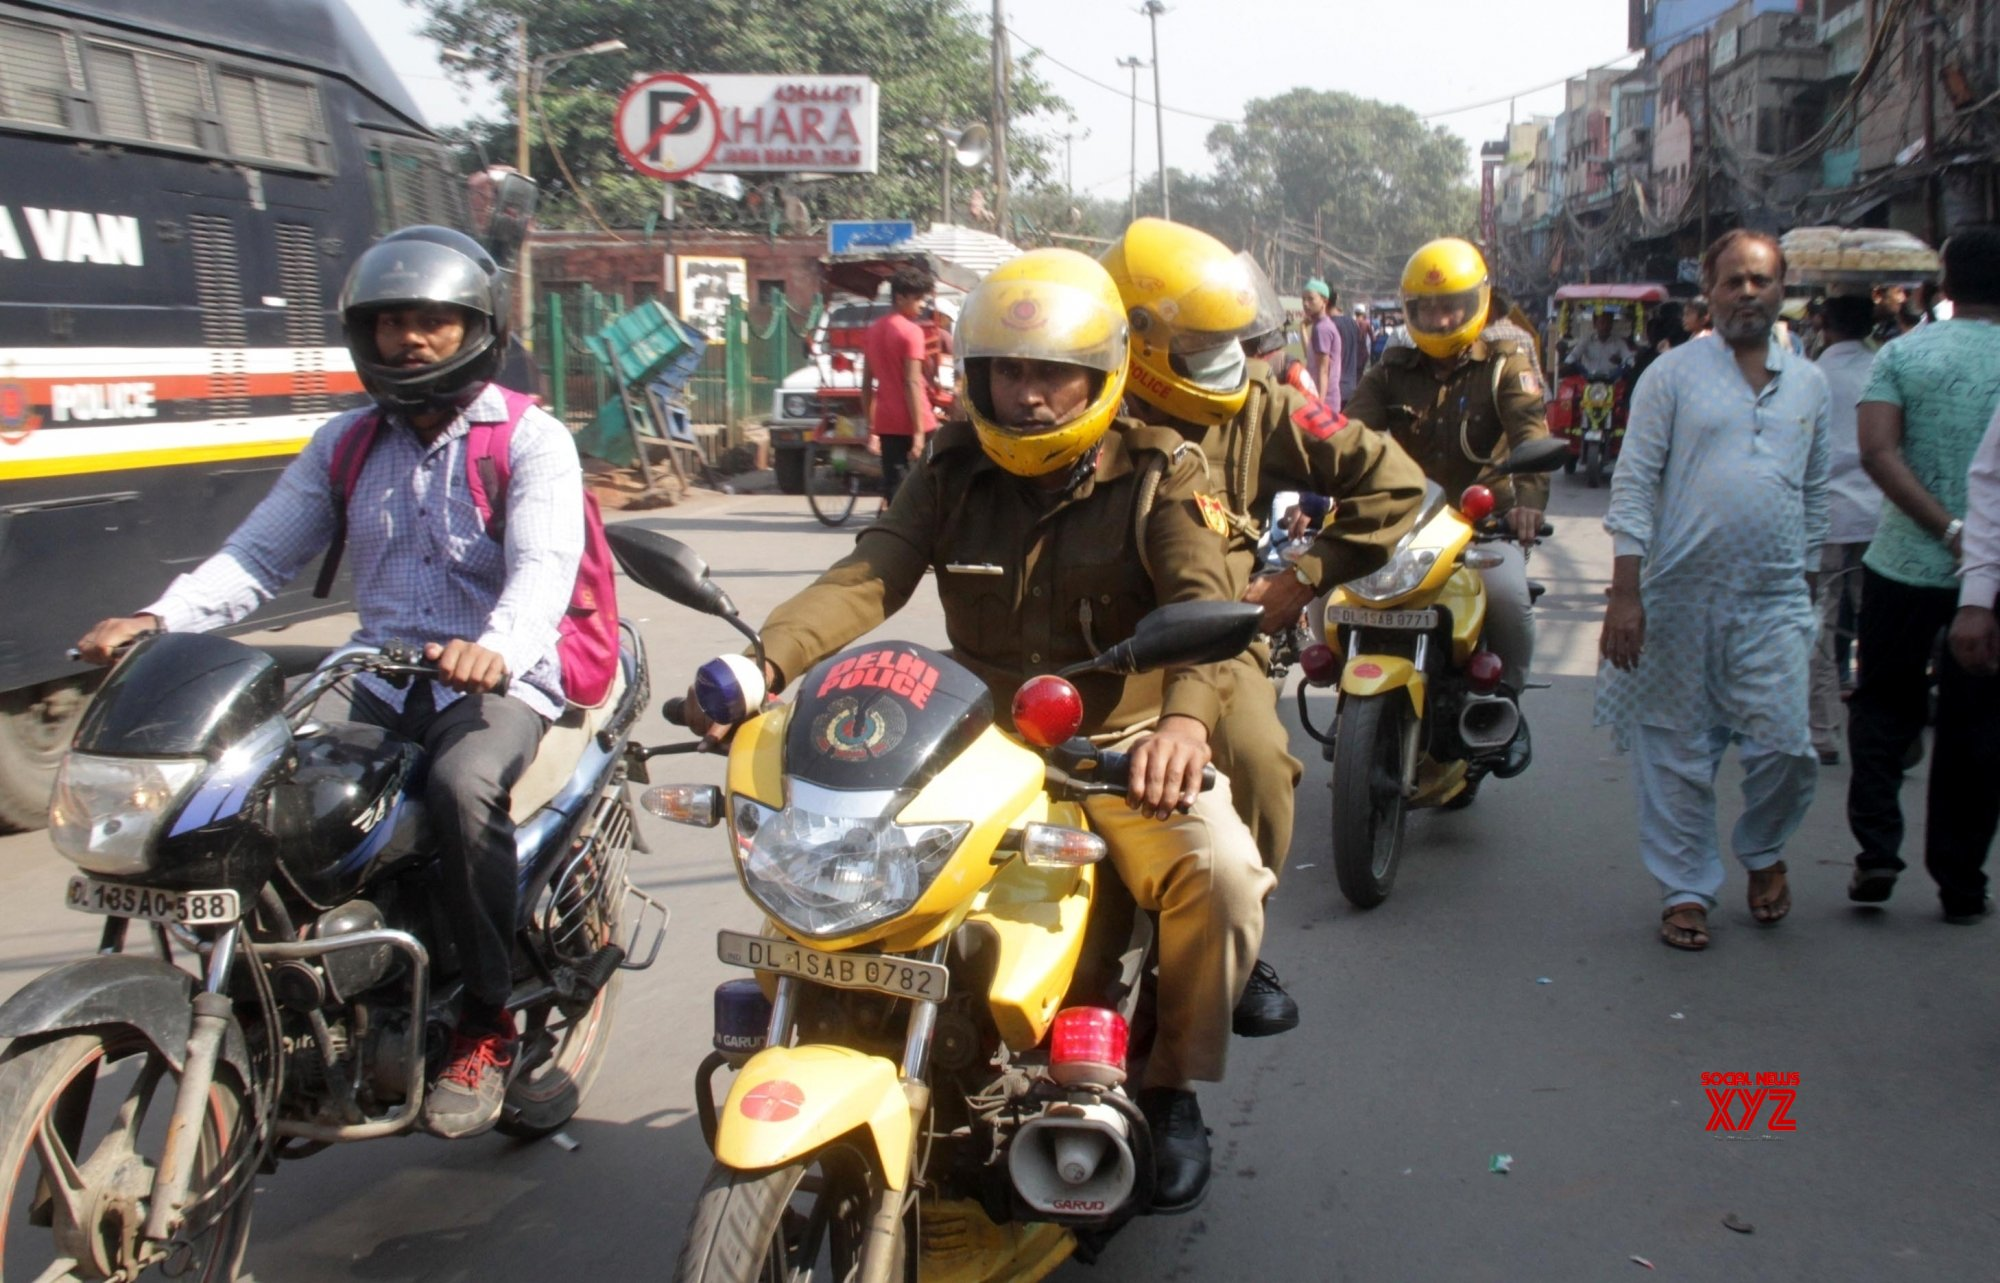 Delhi: Ayodhya verdict - Police takes stock of law and order situation in Old Delhi #Gallery